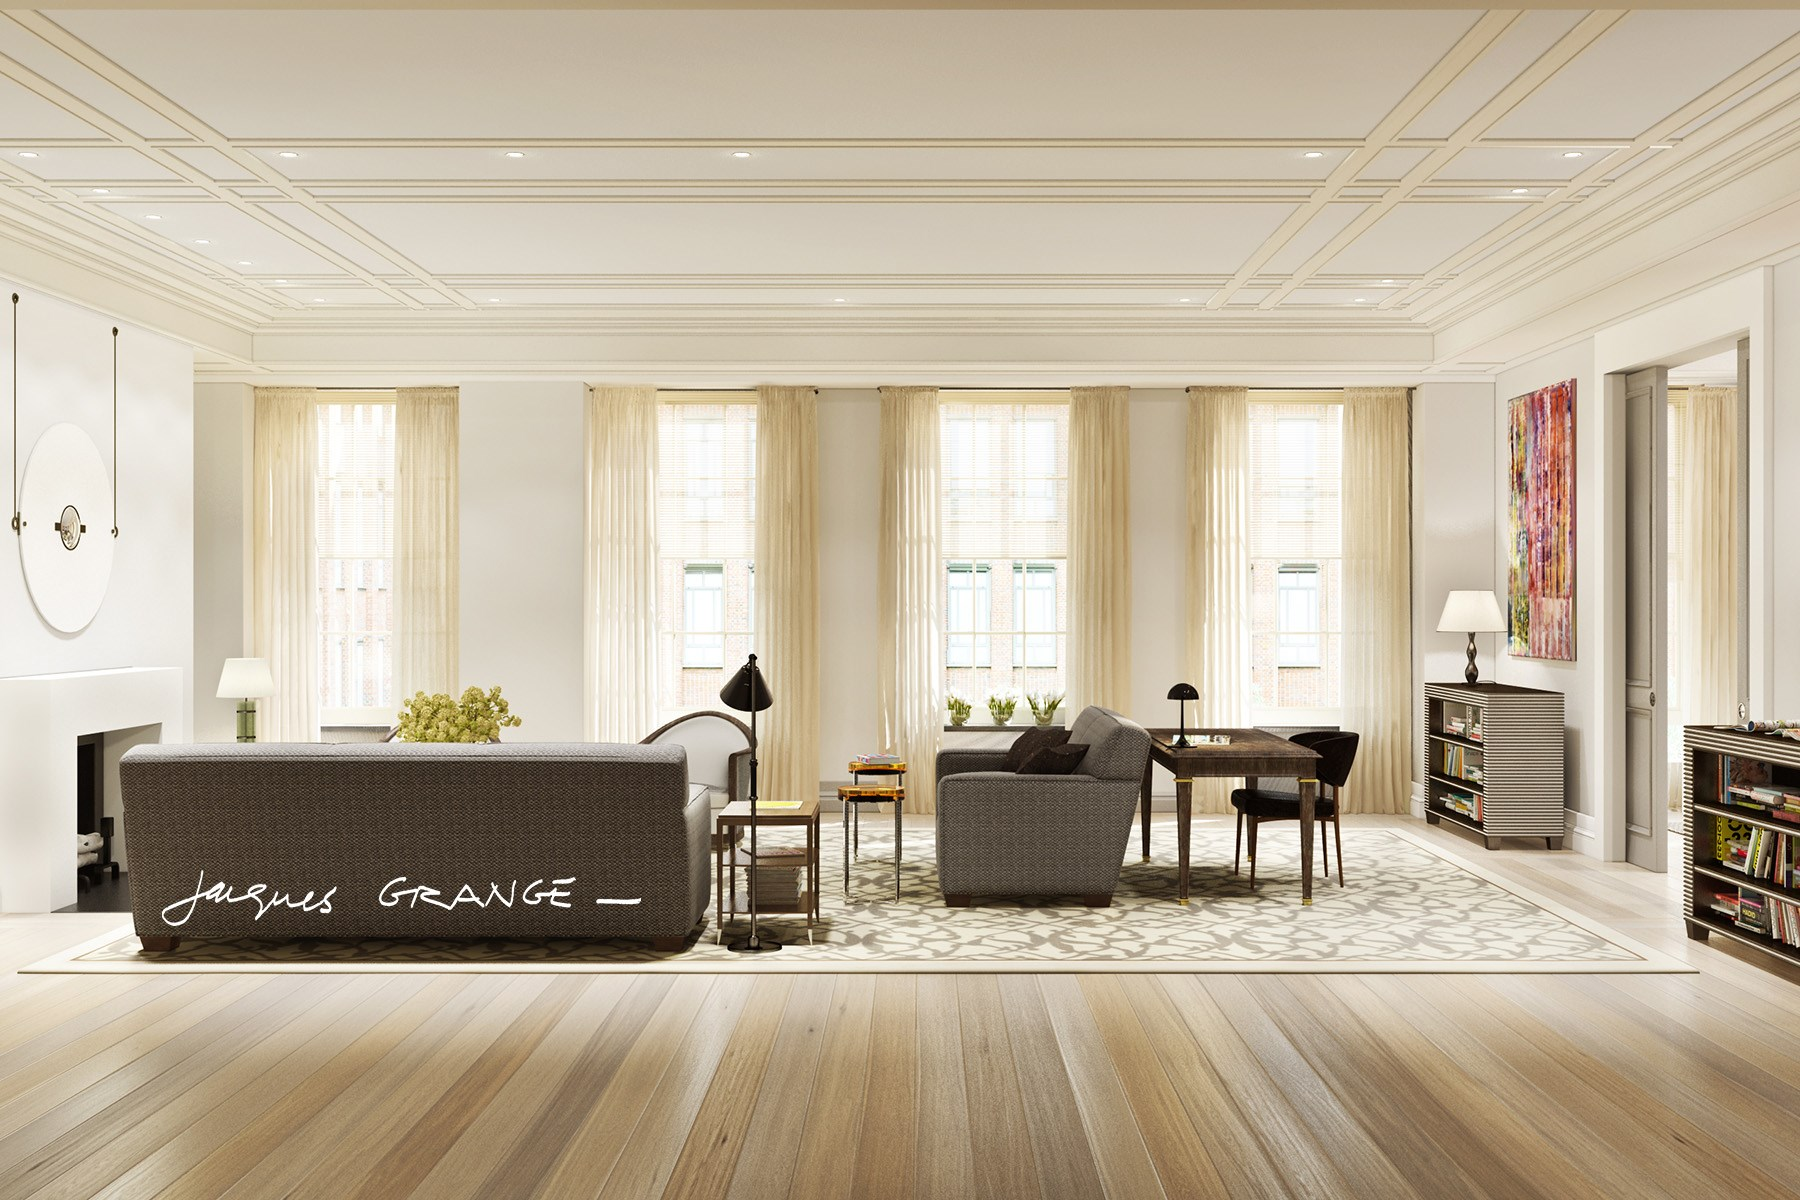 Appartement en copropriété pour l Vente à Jacques Grange, Barry Rice Collaboration 40 East 72nd Street Residence 5 Upper East Side, New York, New York, 10021 États-Unis